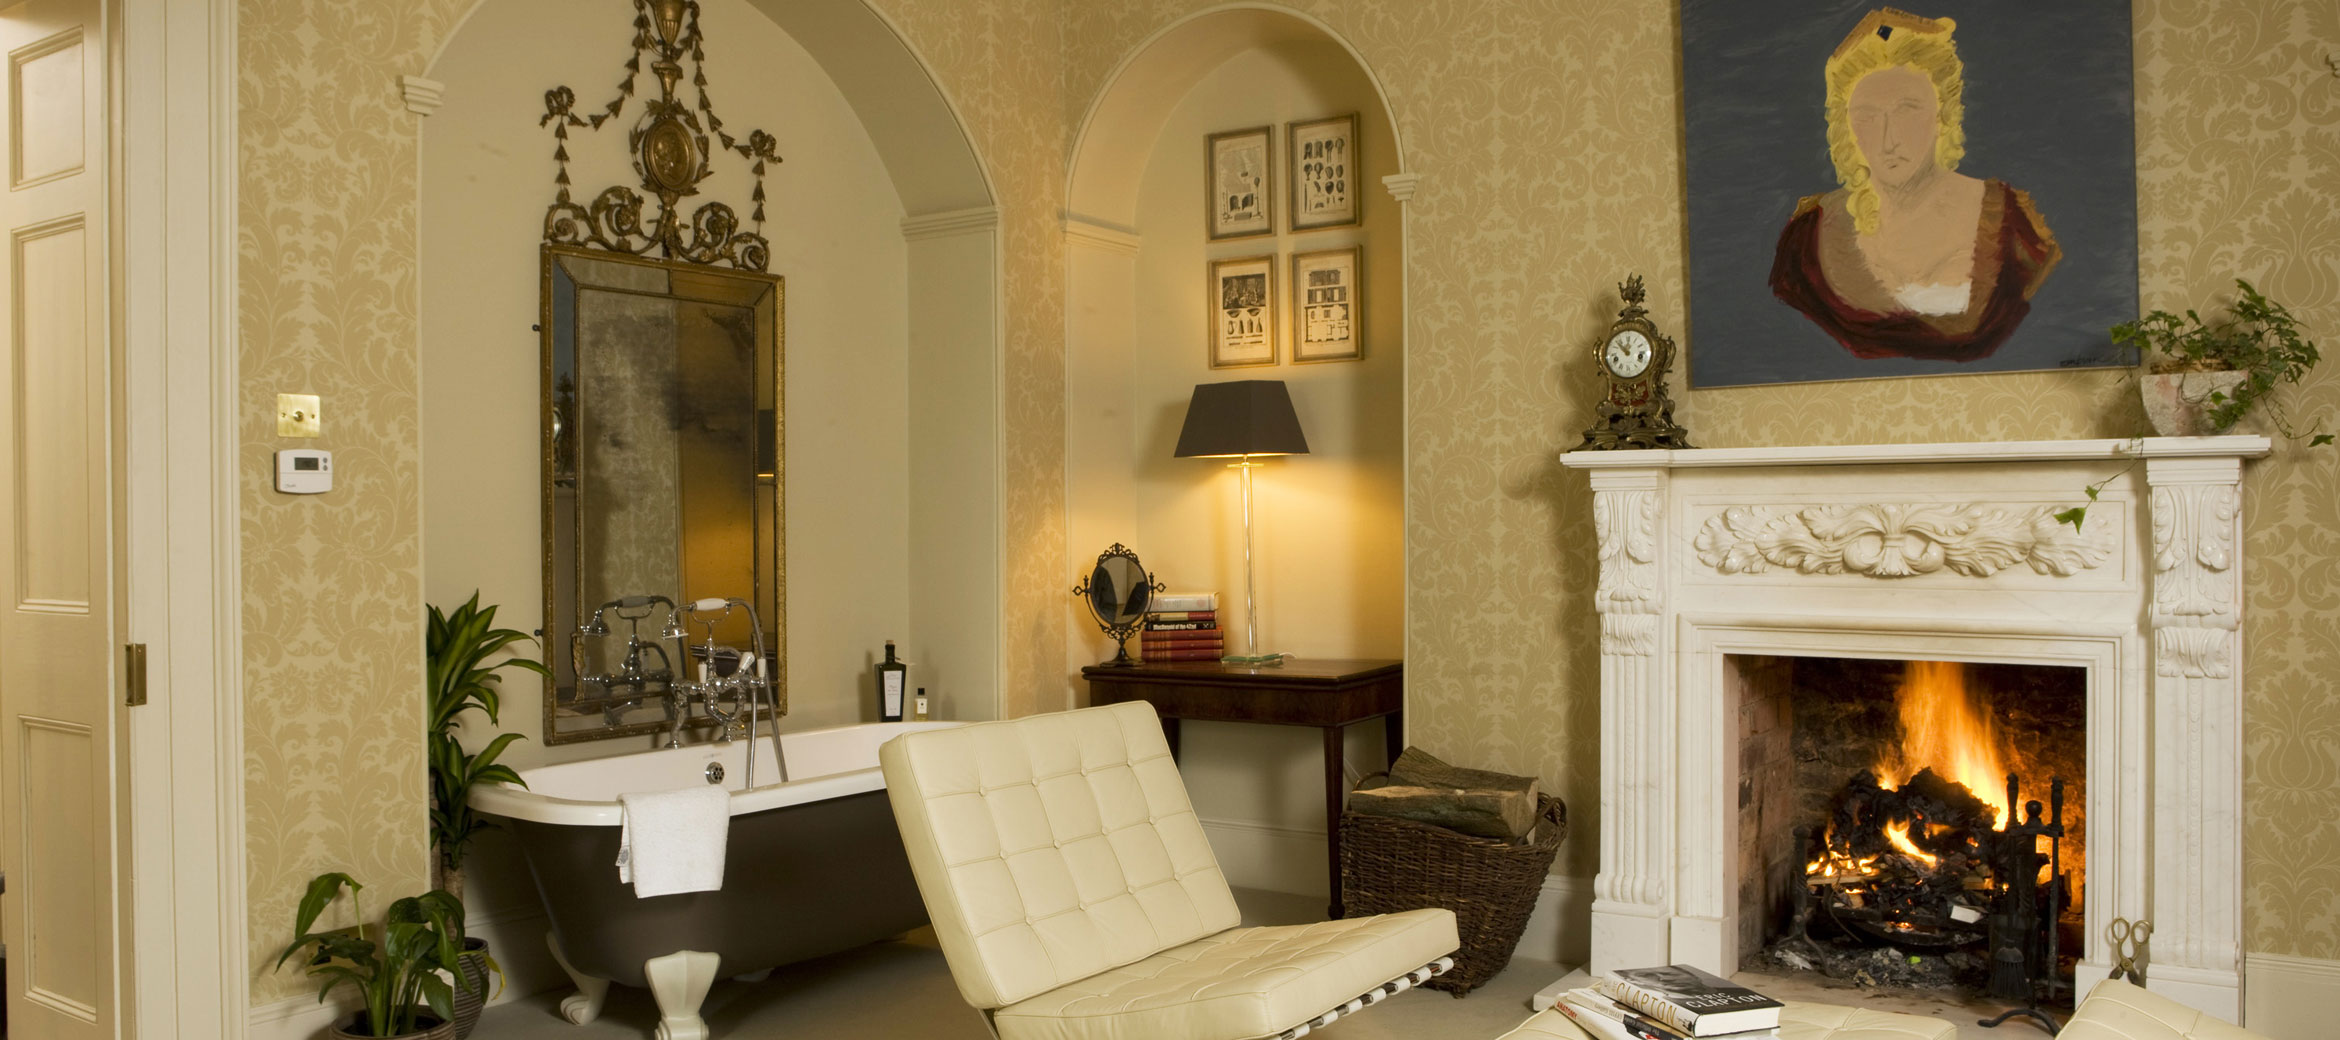 Singer-House-chipping-campden-master-suite-bathtub